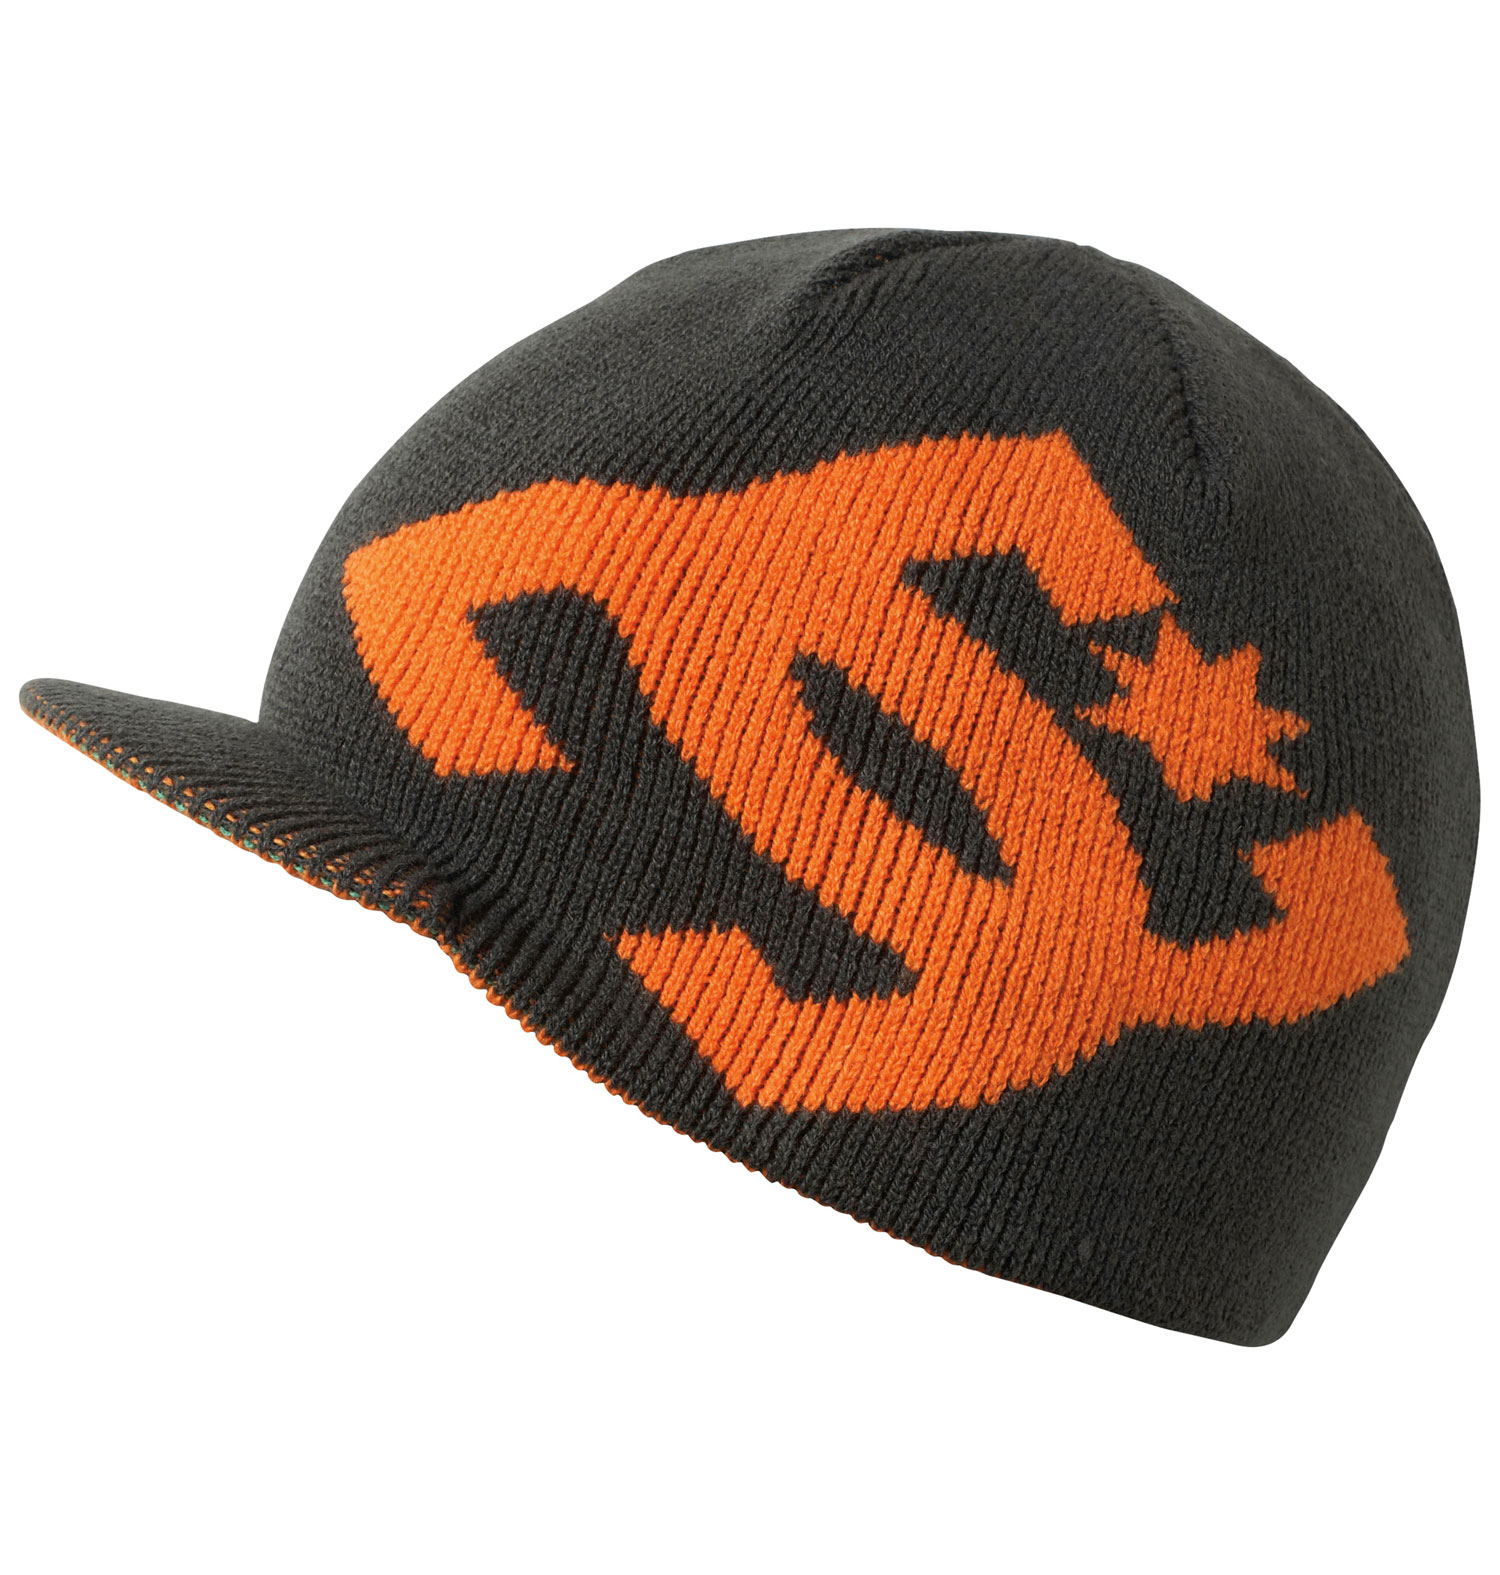 Four way stretch reversible standard visor beanie with dc and dcshoecousa jacquarded logoKey Features of the DC Cascata Beanie: Fit: reversible visor Fabric: 4 way stretch 95%acrylic / 5% lycra - $30.00